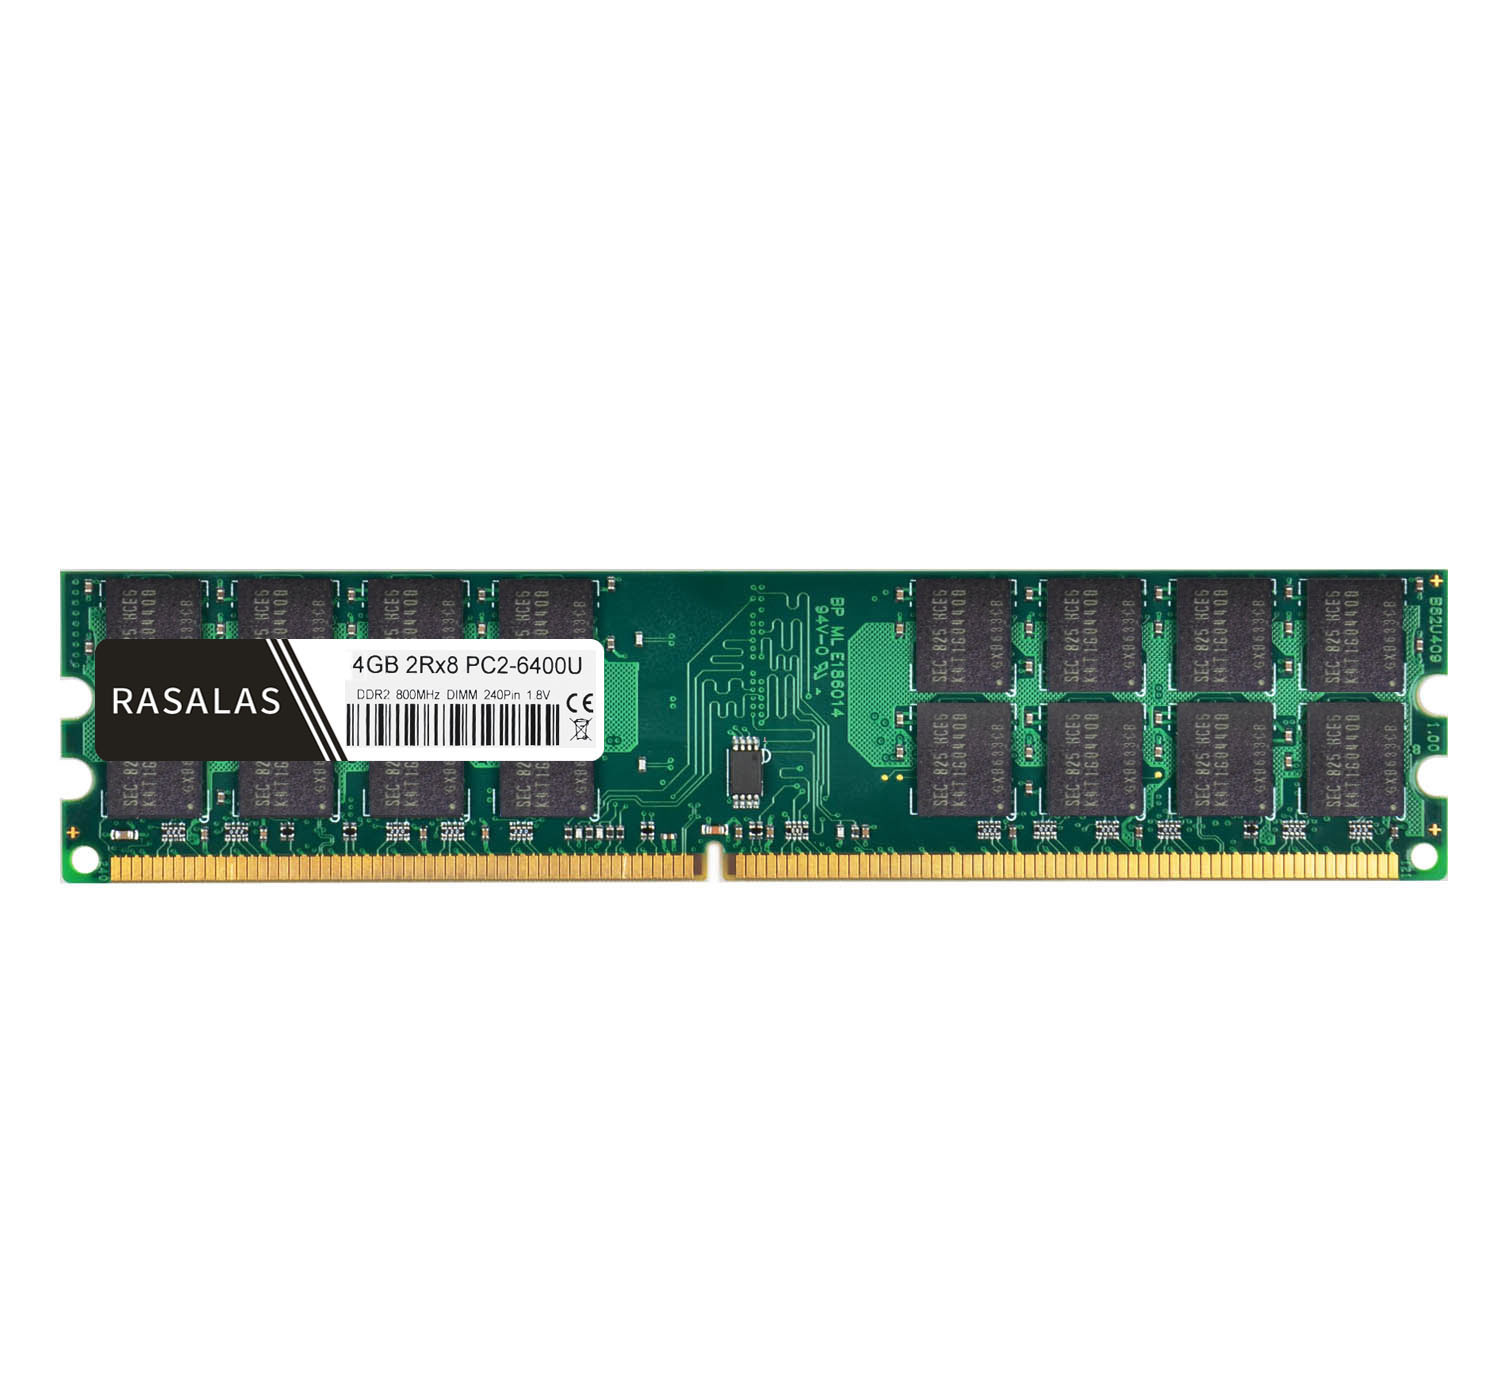 Rasalas <font><b>4GB</b></font> 2Rx8 <font><b>DDR2</b></font> <font><b>667Mhz</b></font> 800Mhz PC2-5300U PC2-6400U DIMM 1,8 V Desktop PC RAM 240Pin Memory Only For AMD CPU image